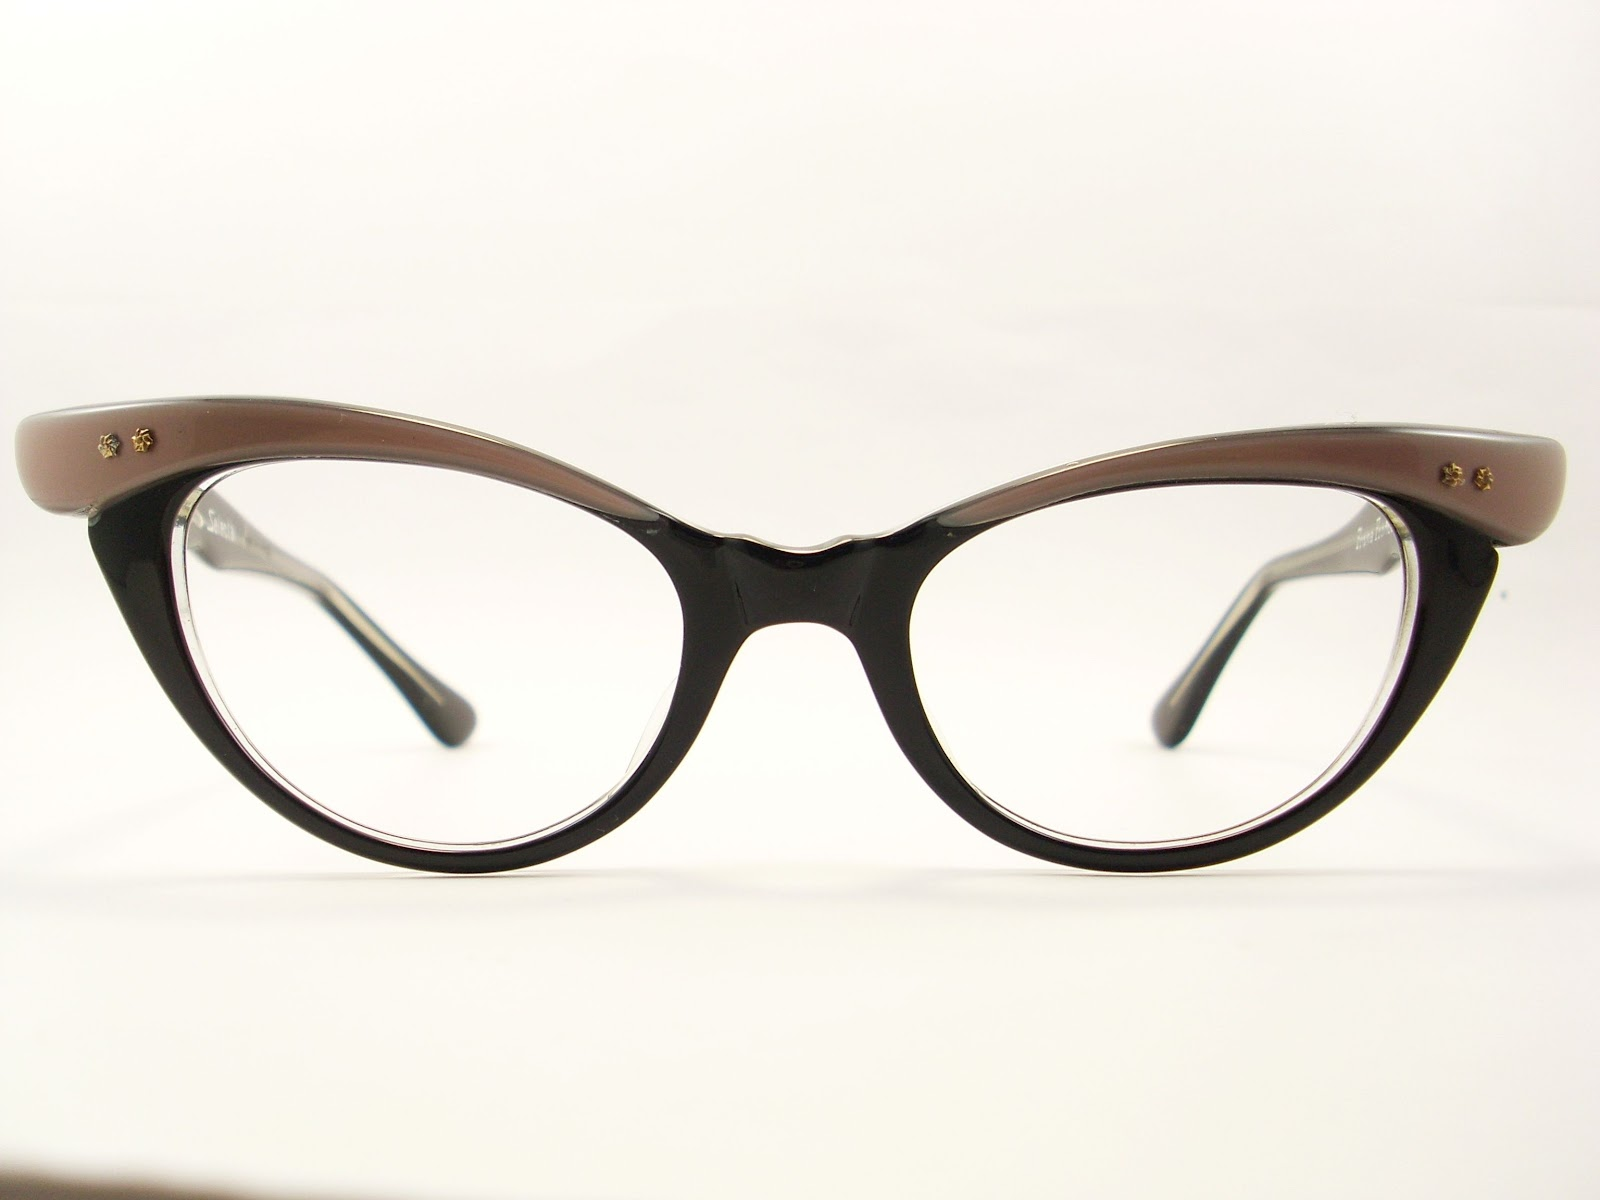 Vintage Eyeglass Frames Cat Eye : Gallery For > Vintage Cat Eye Glasses Frames